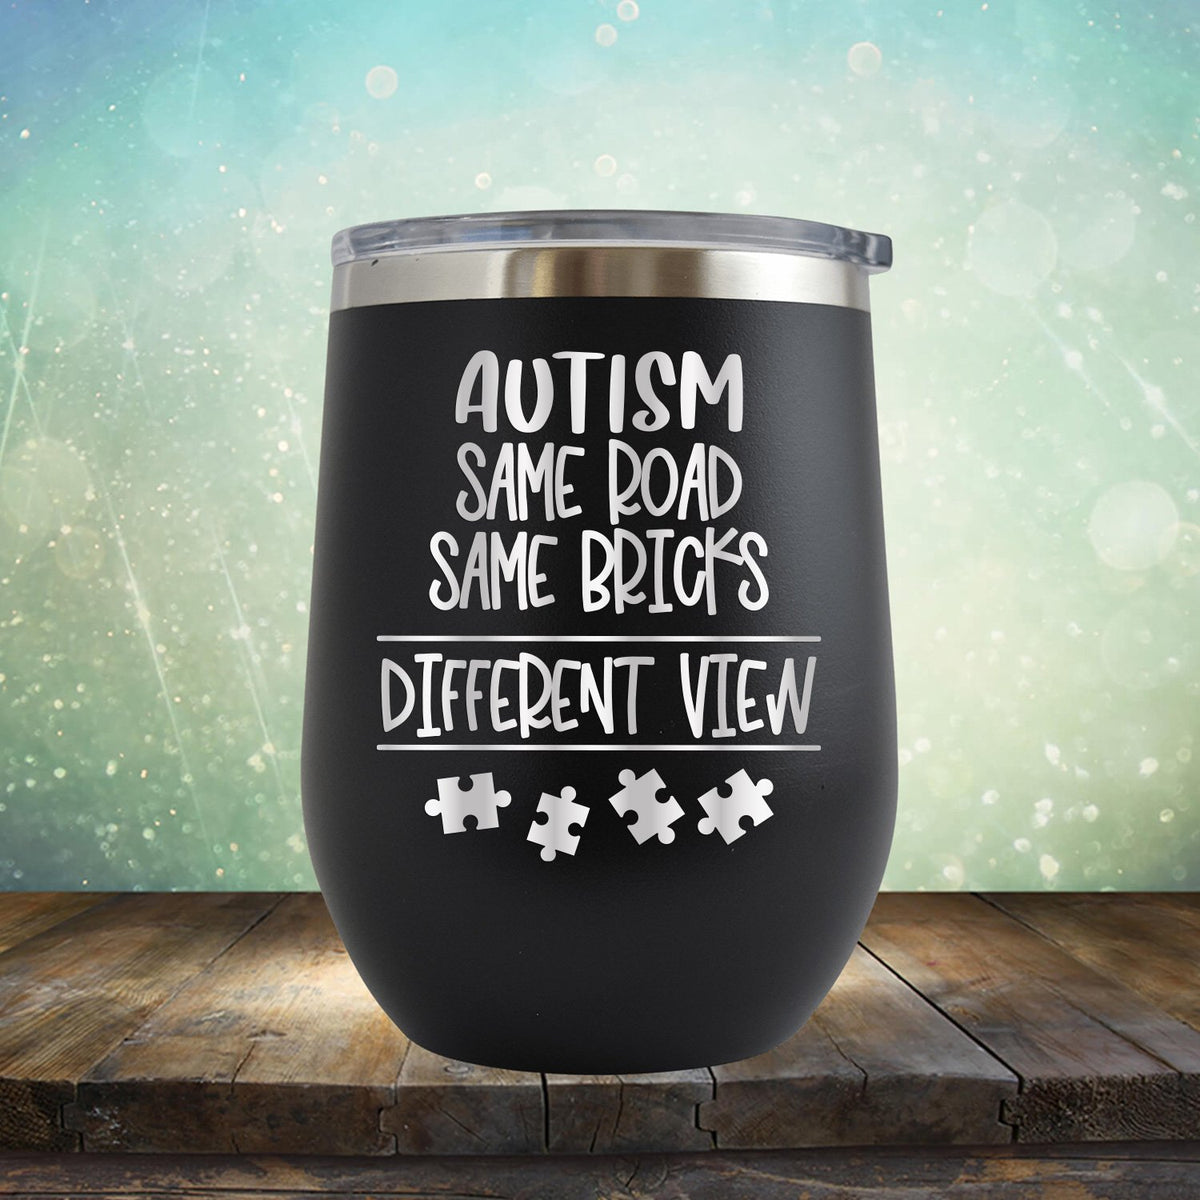 AUTISM Same Road Same Bricks Different View - Wine Tumbler